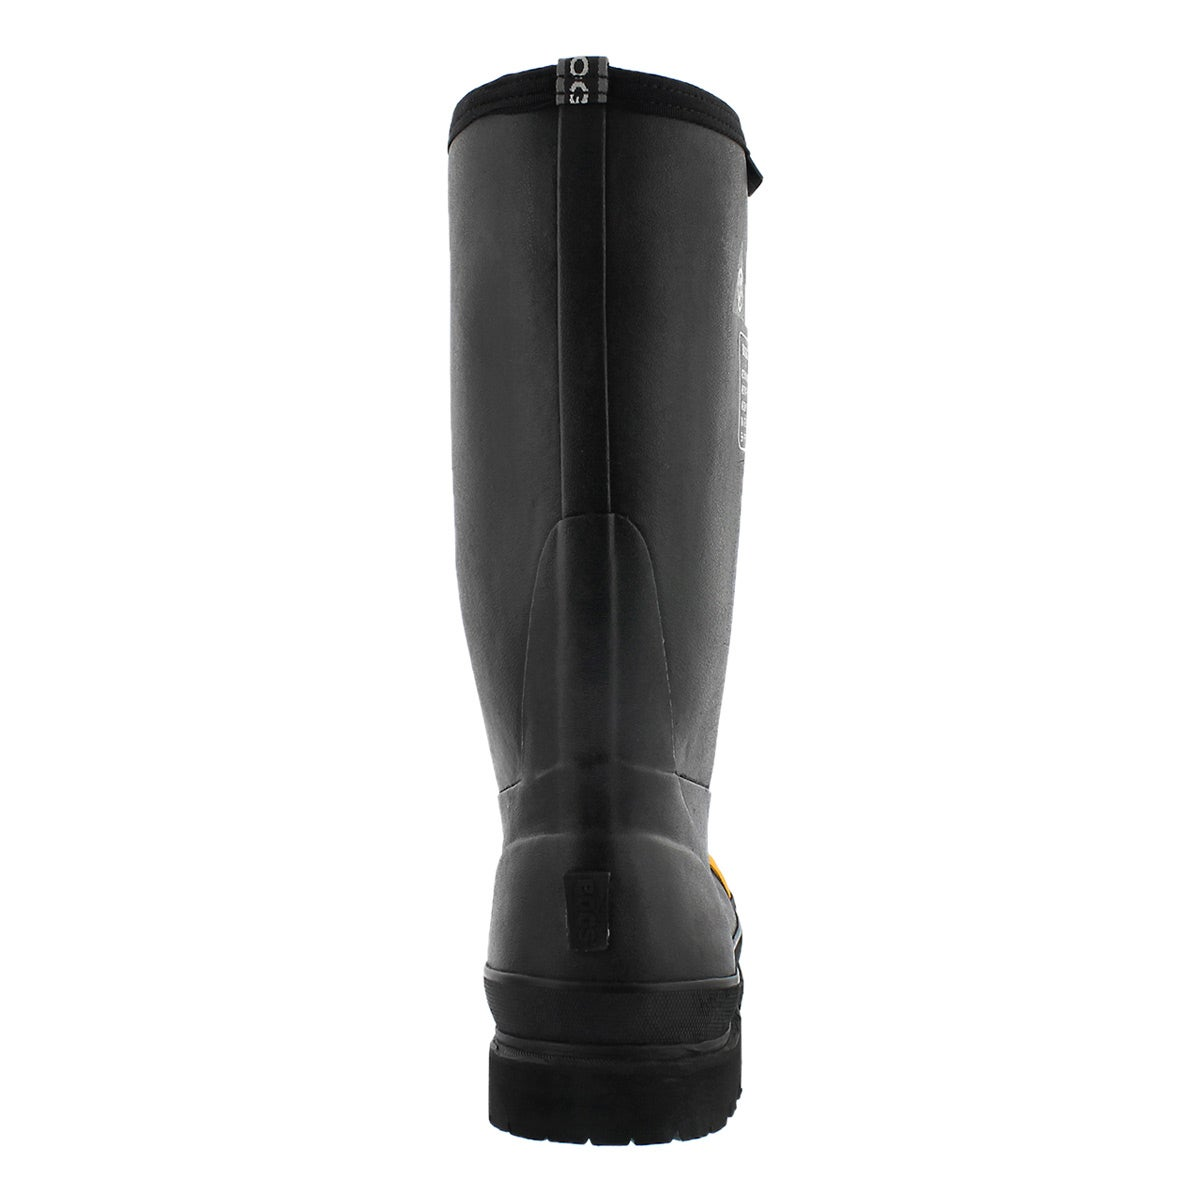 Mns Forge Lite ST CSA wtpf blk boot